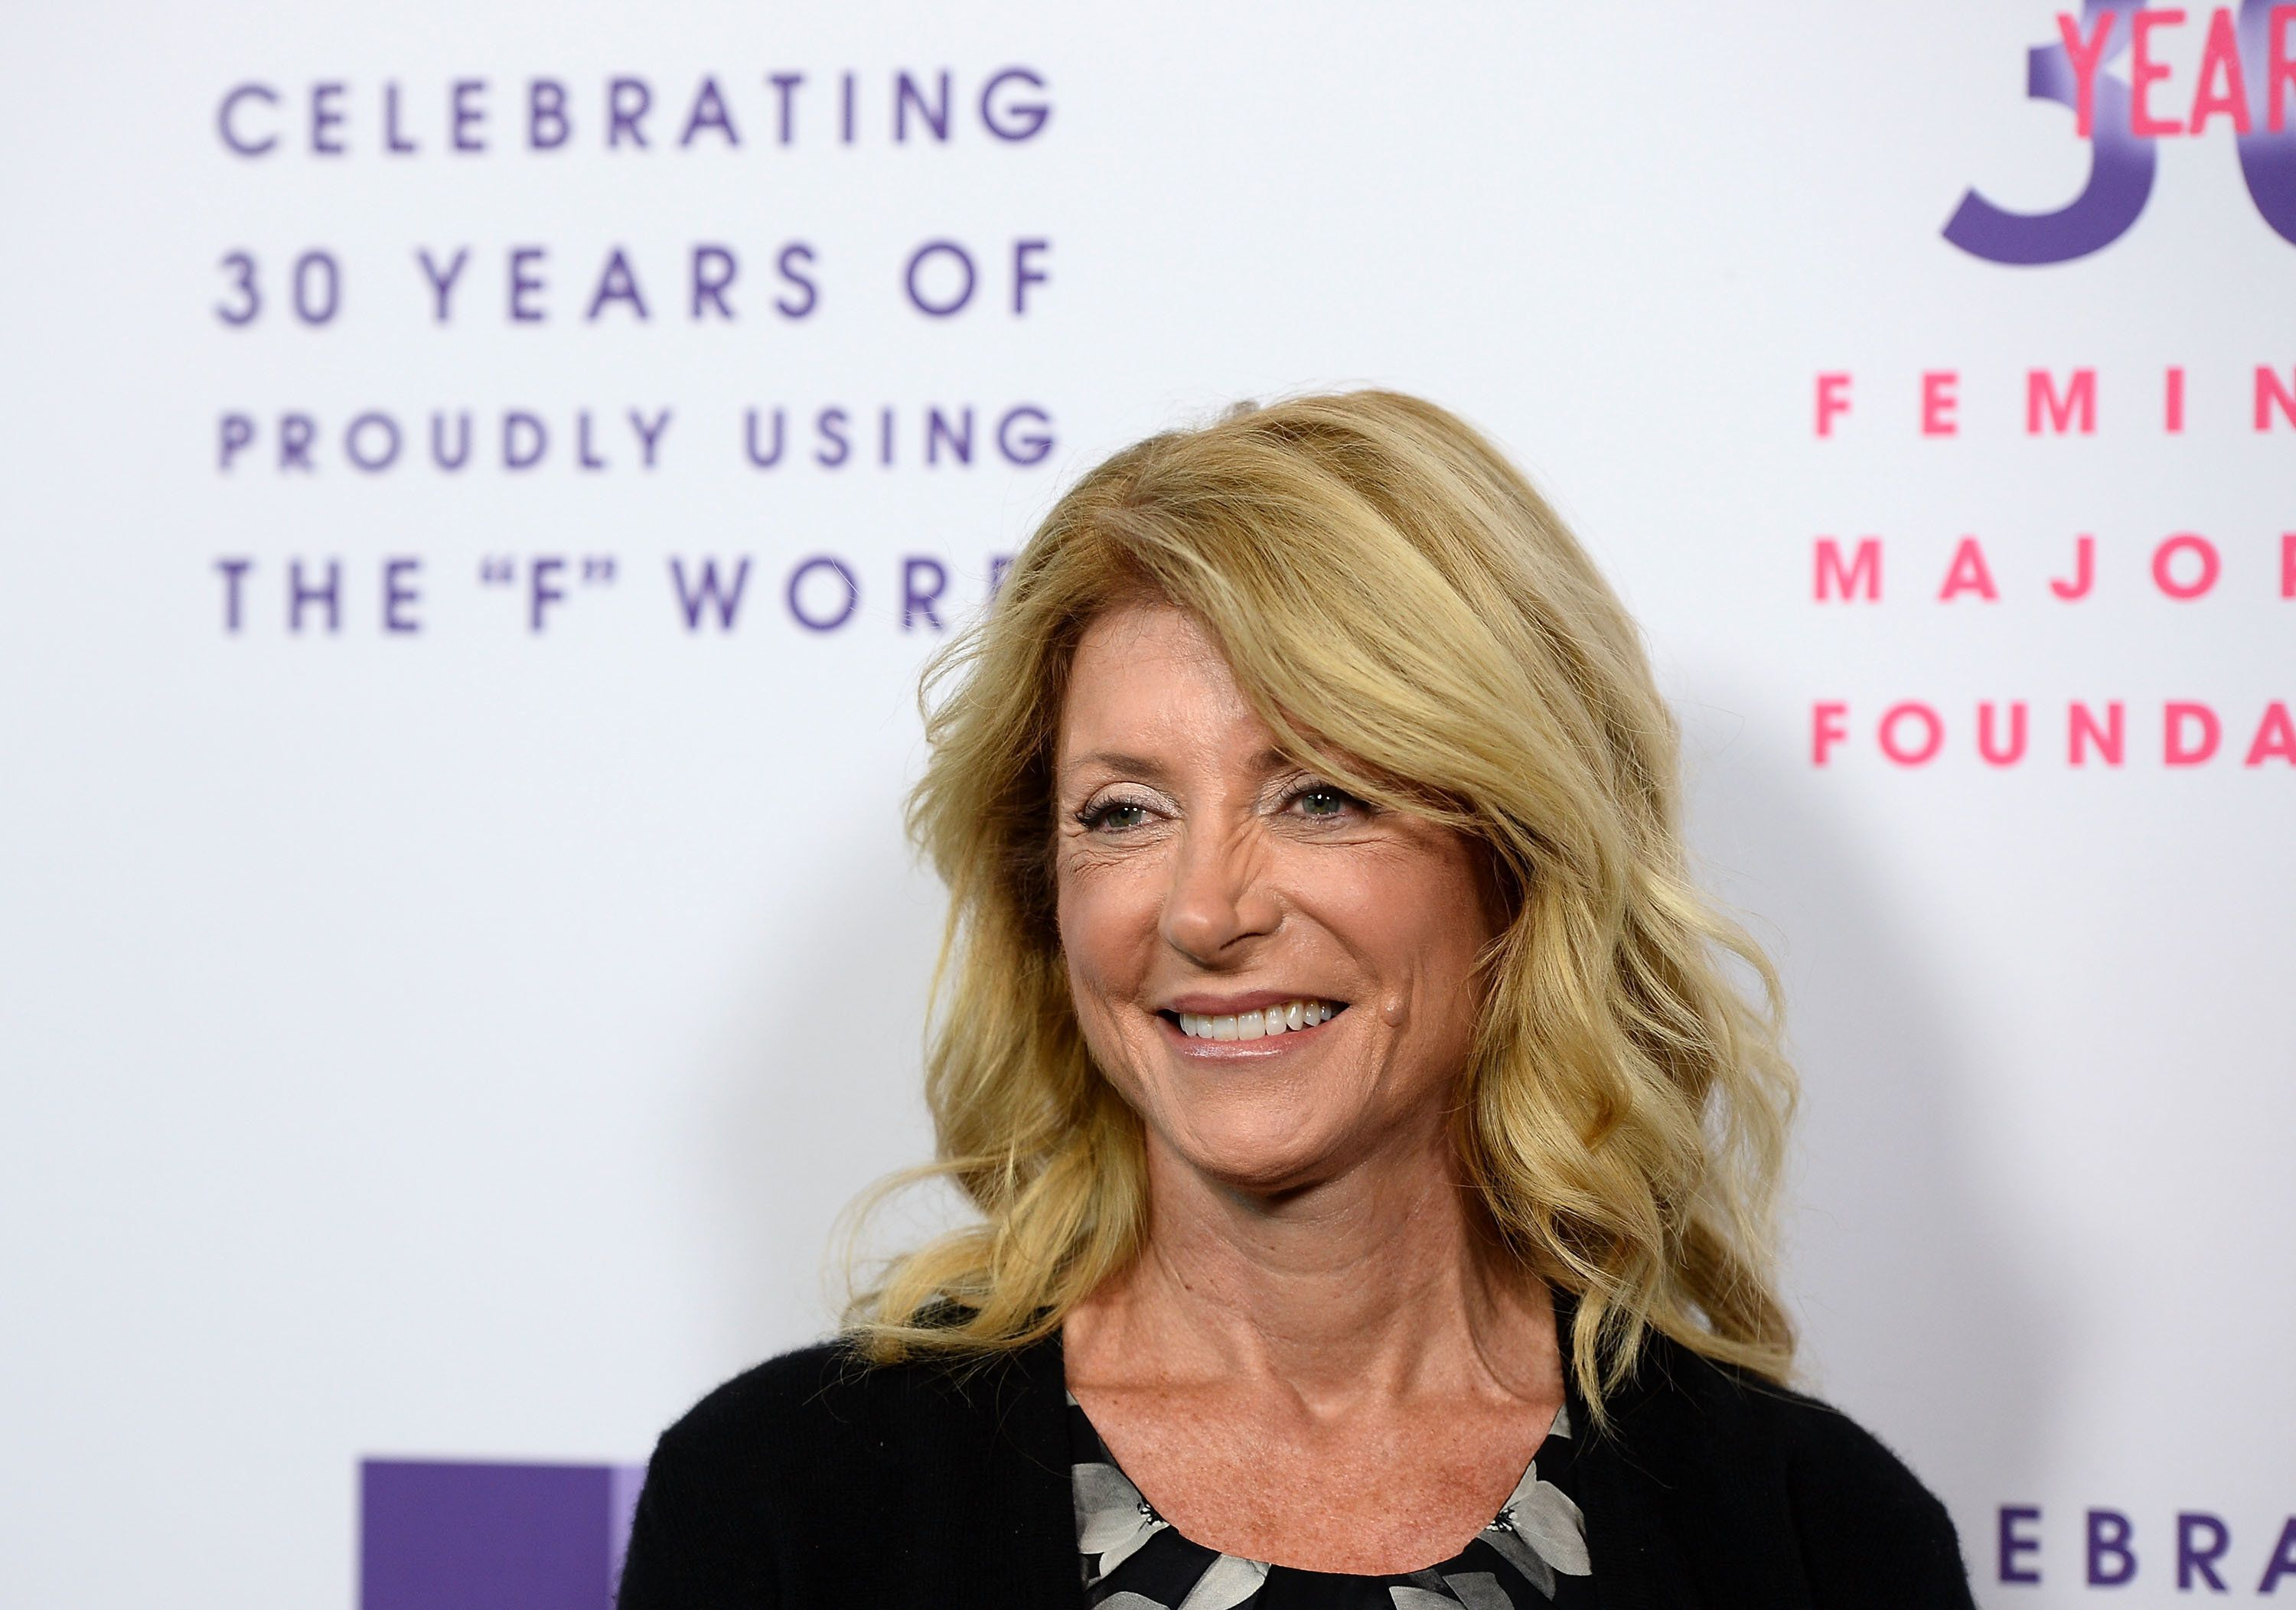 LOS ANGELES, CA - MAY 22:  Former Texas State Senator, The Honorable Wendy Davis arrives at the Feminist Majority Foundation 30th Anniversary Celebration at the Directors Guild Of America on May 22, 2017 in Los Angeles, California.  (Photo by Amanda Edwards/WireImage)